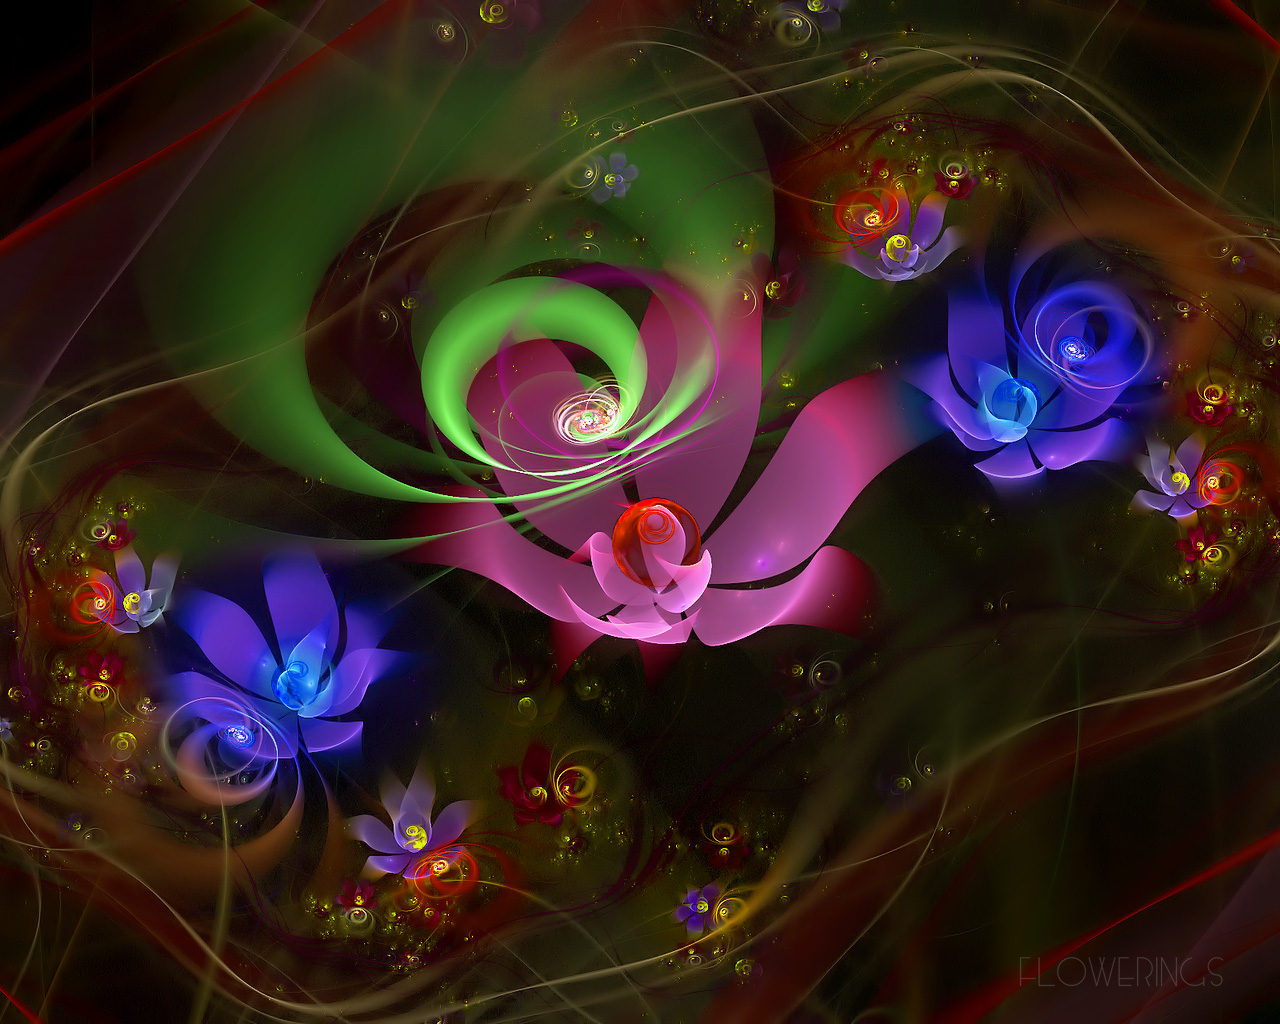 D fantasy abstract flowers 3243